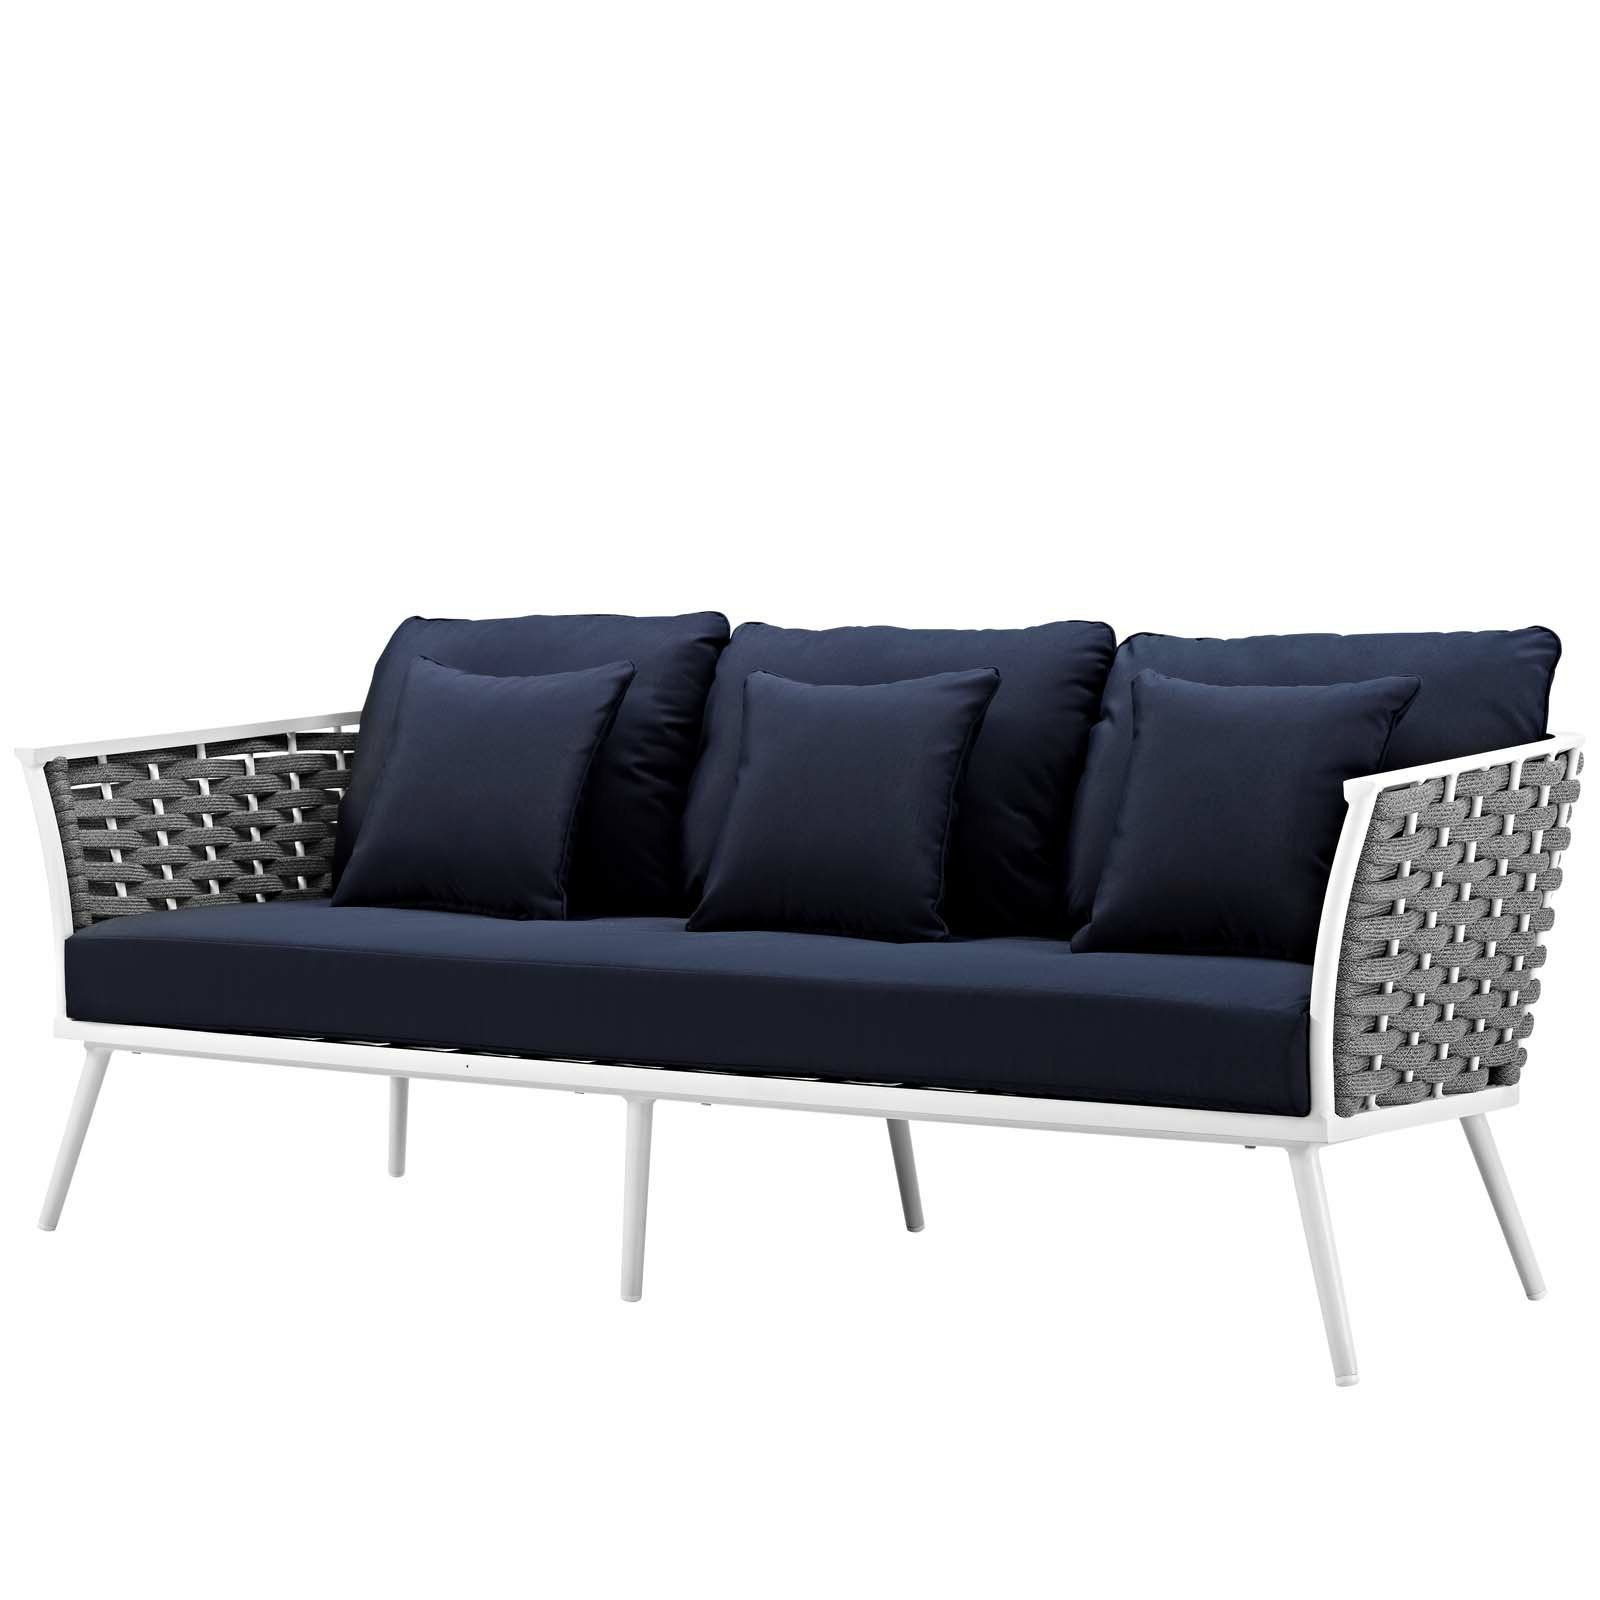 Rossville Outdoor Patio Sofa With Cushions In Preferred Baca Patio Sofas With Cushions (View 23 of 25)